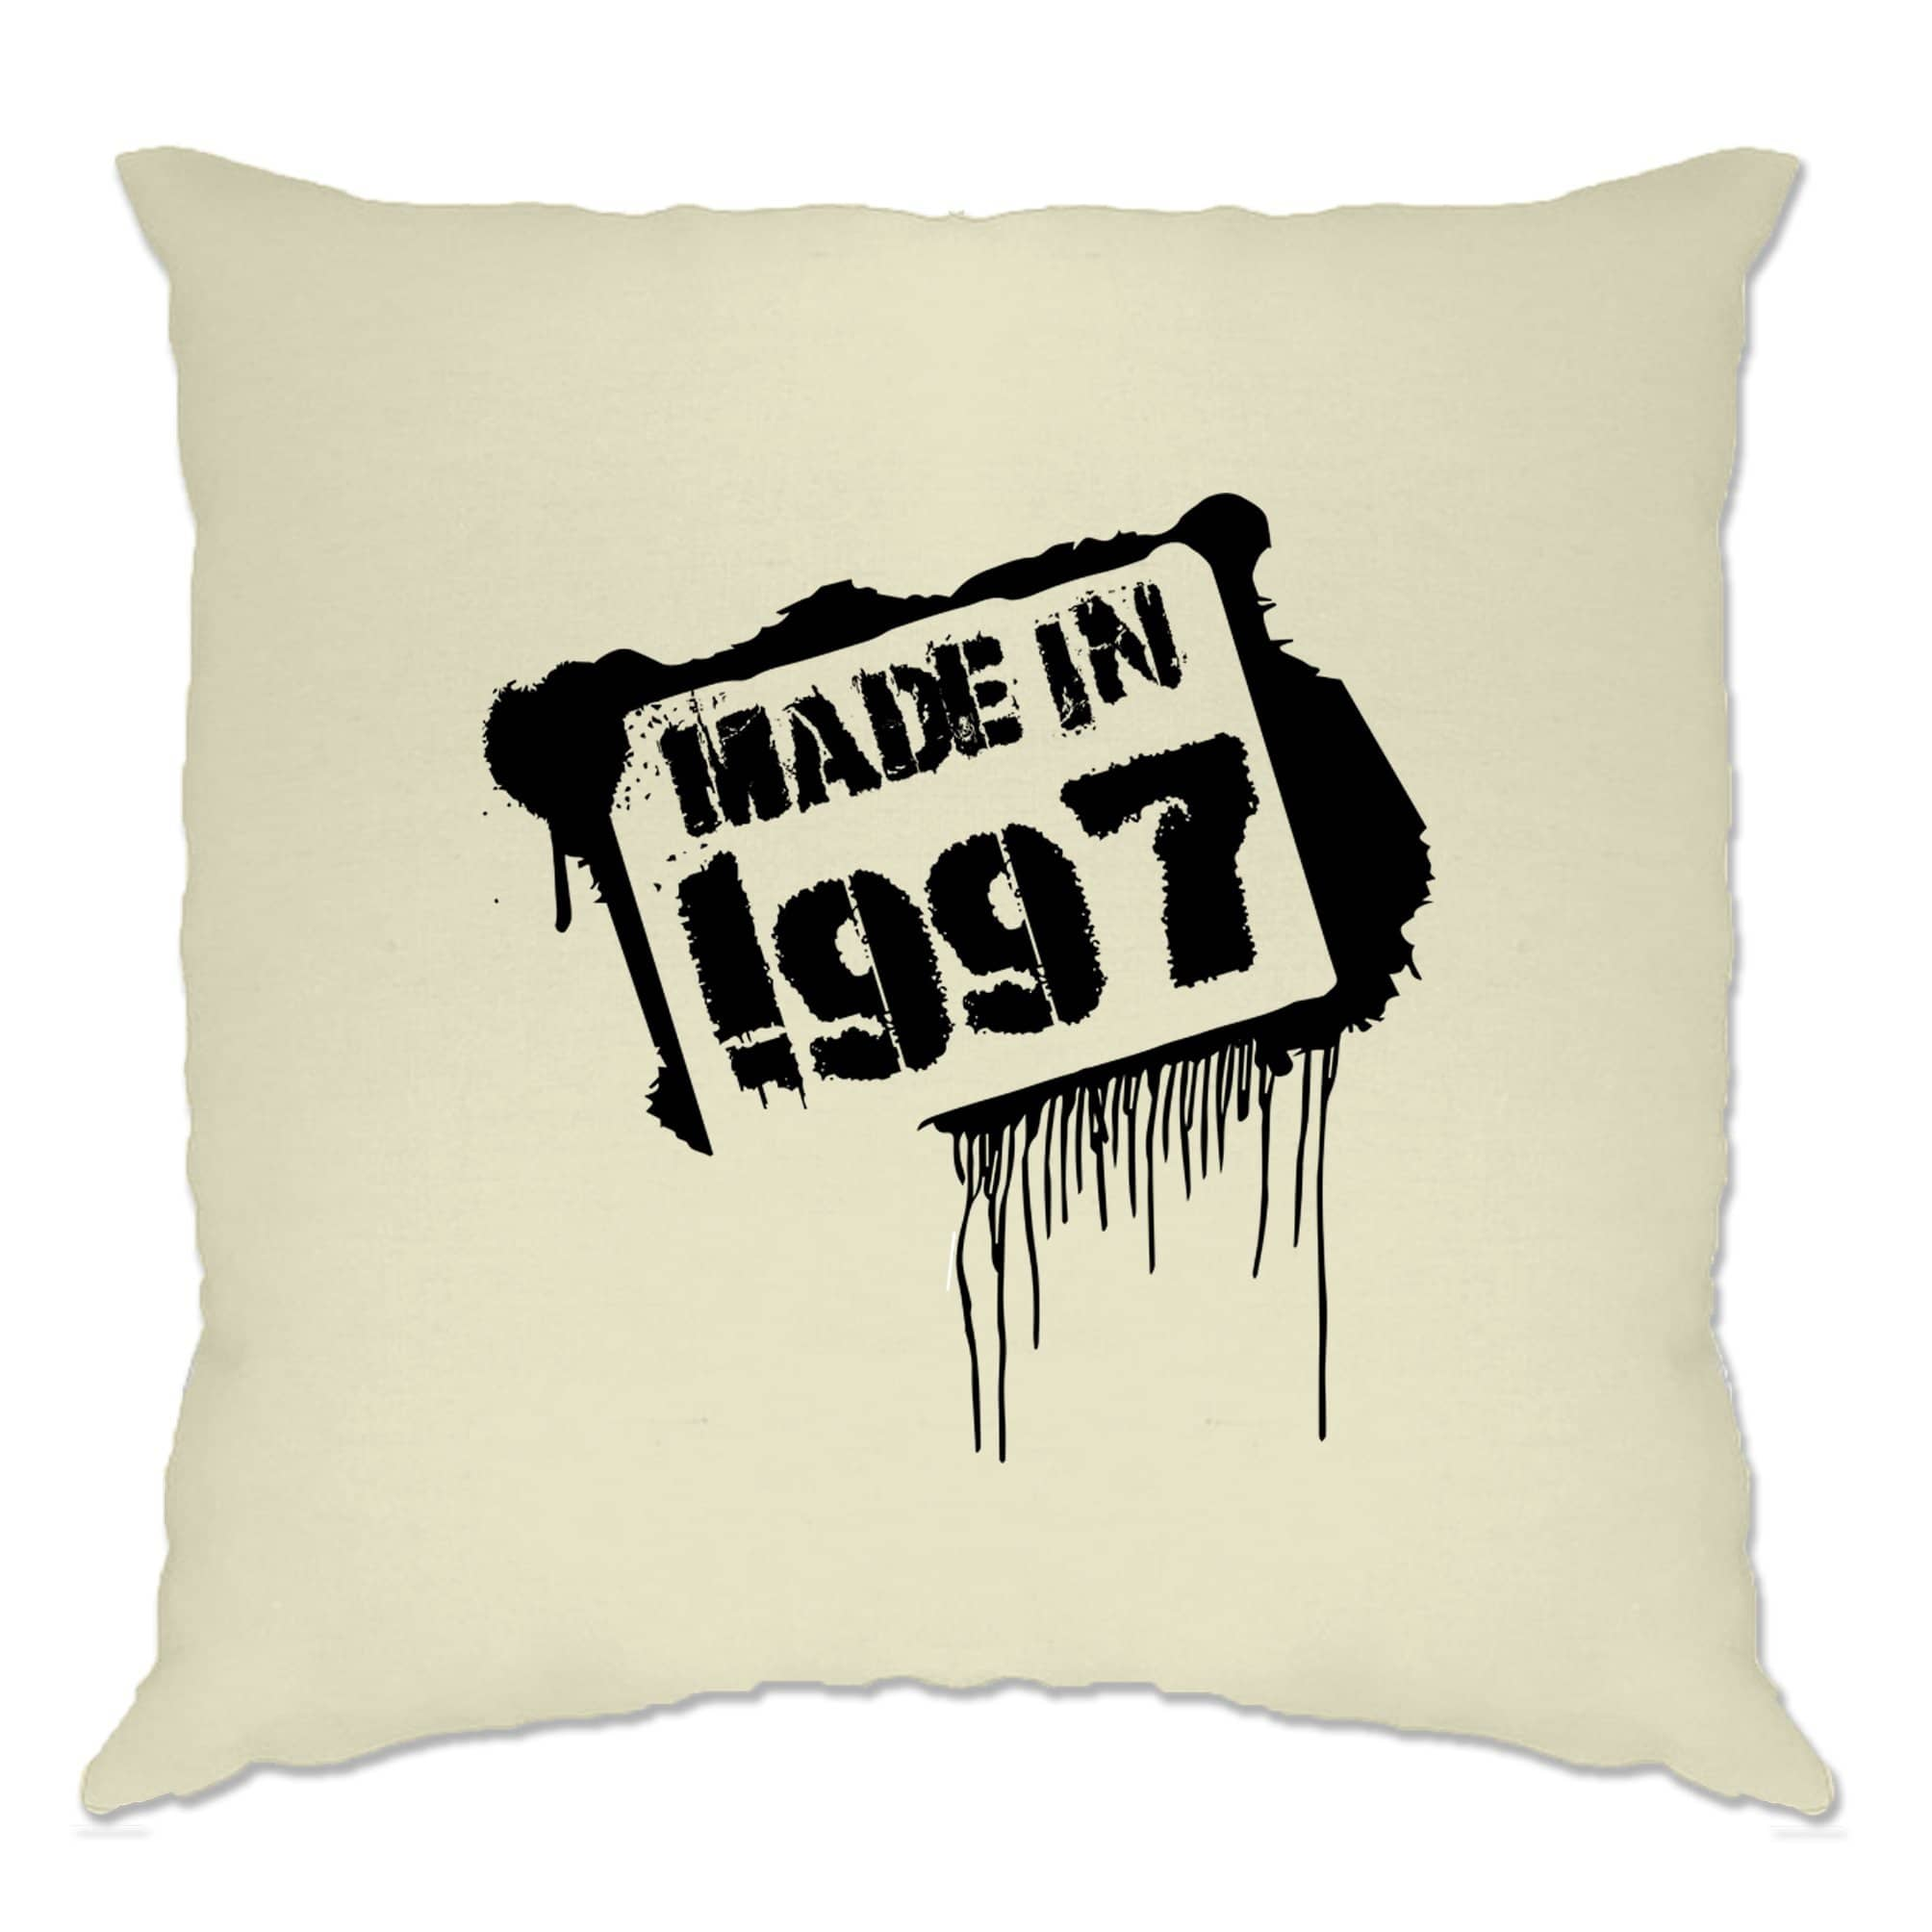 Birthday Cushion Cover Made In 1997 Graffiti